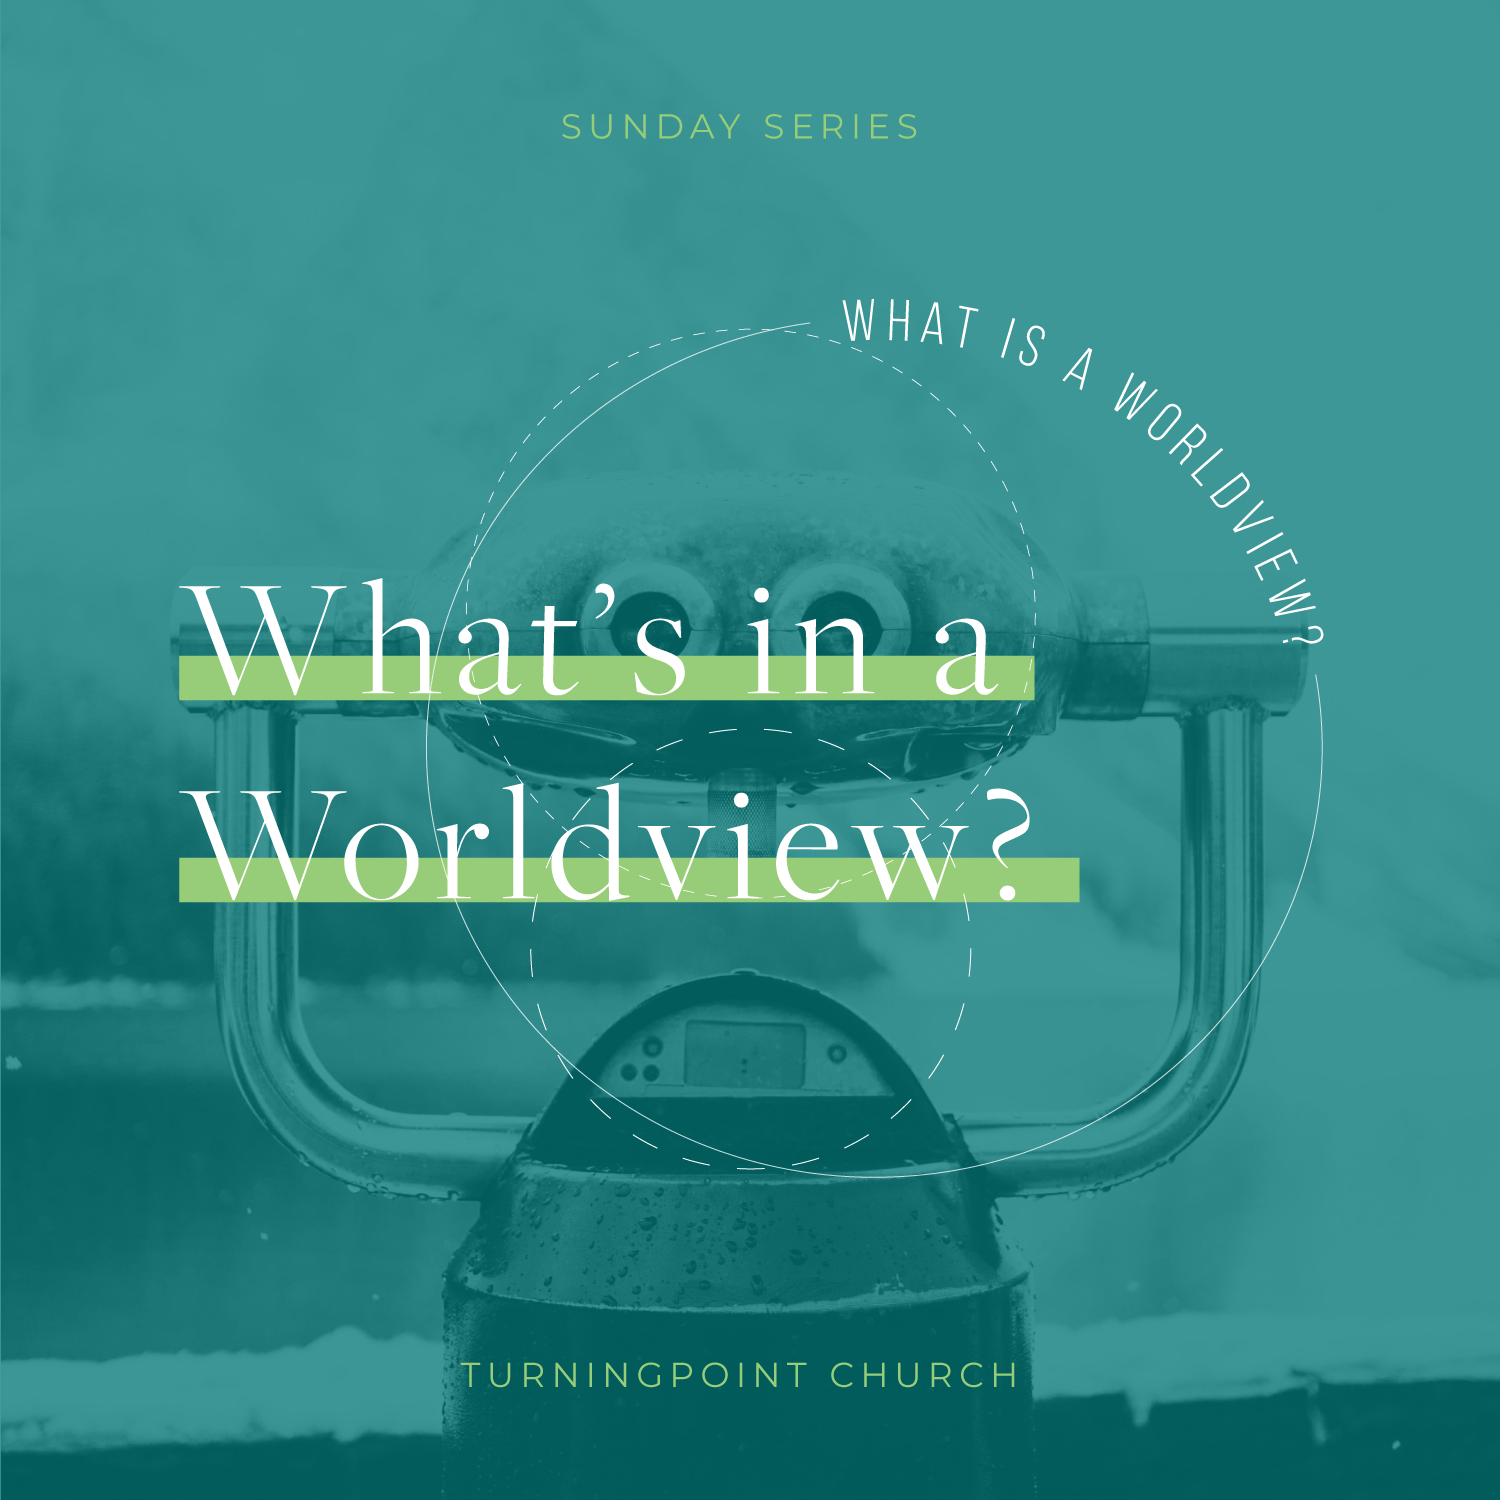 01 - What Is A Worldview? By Pastor Jeff Wickwire | LT38603-1